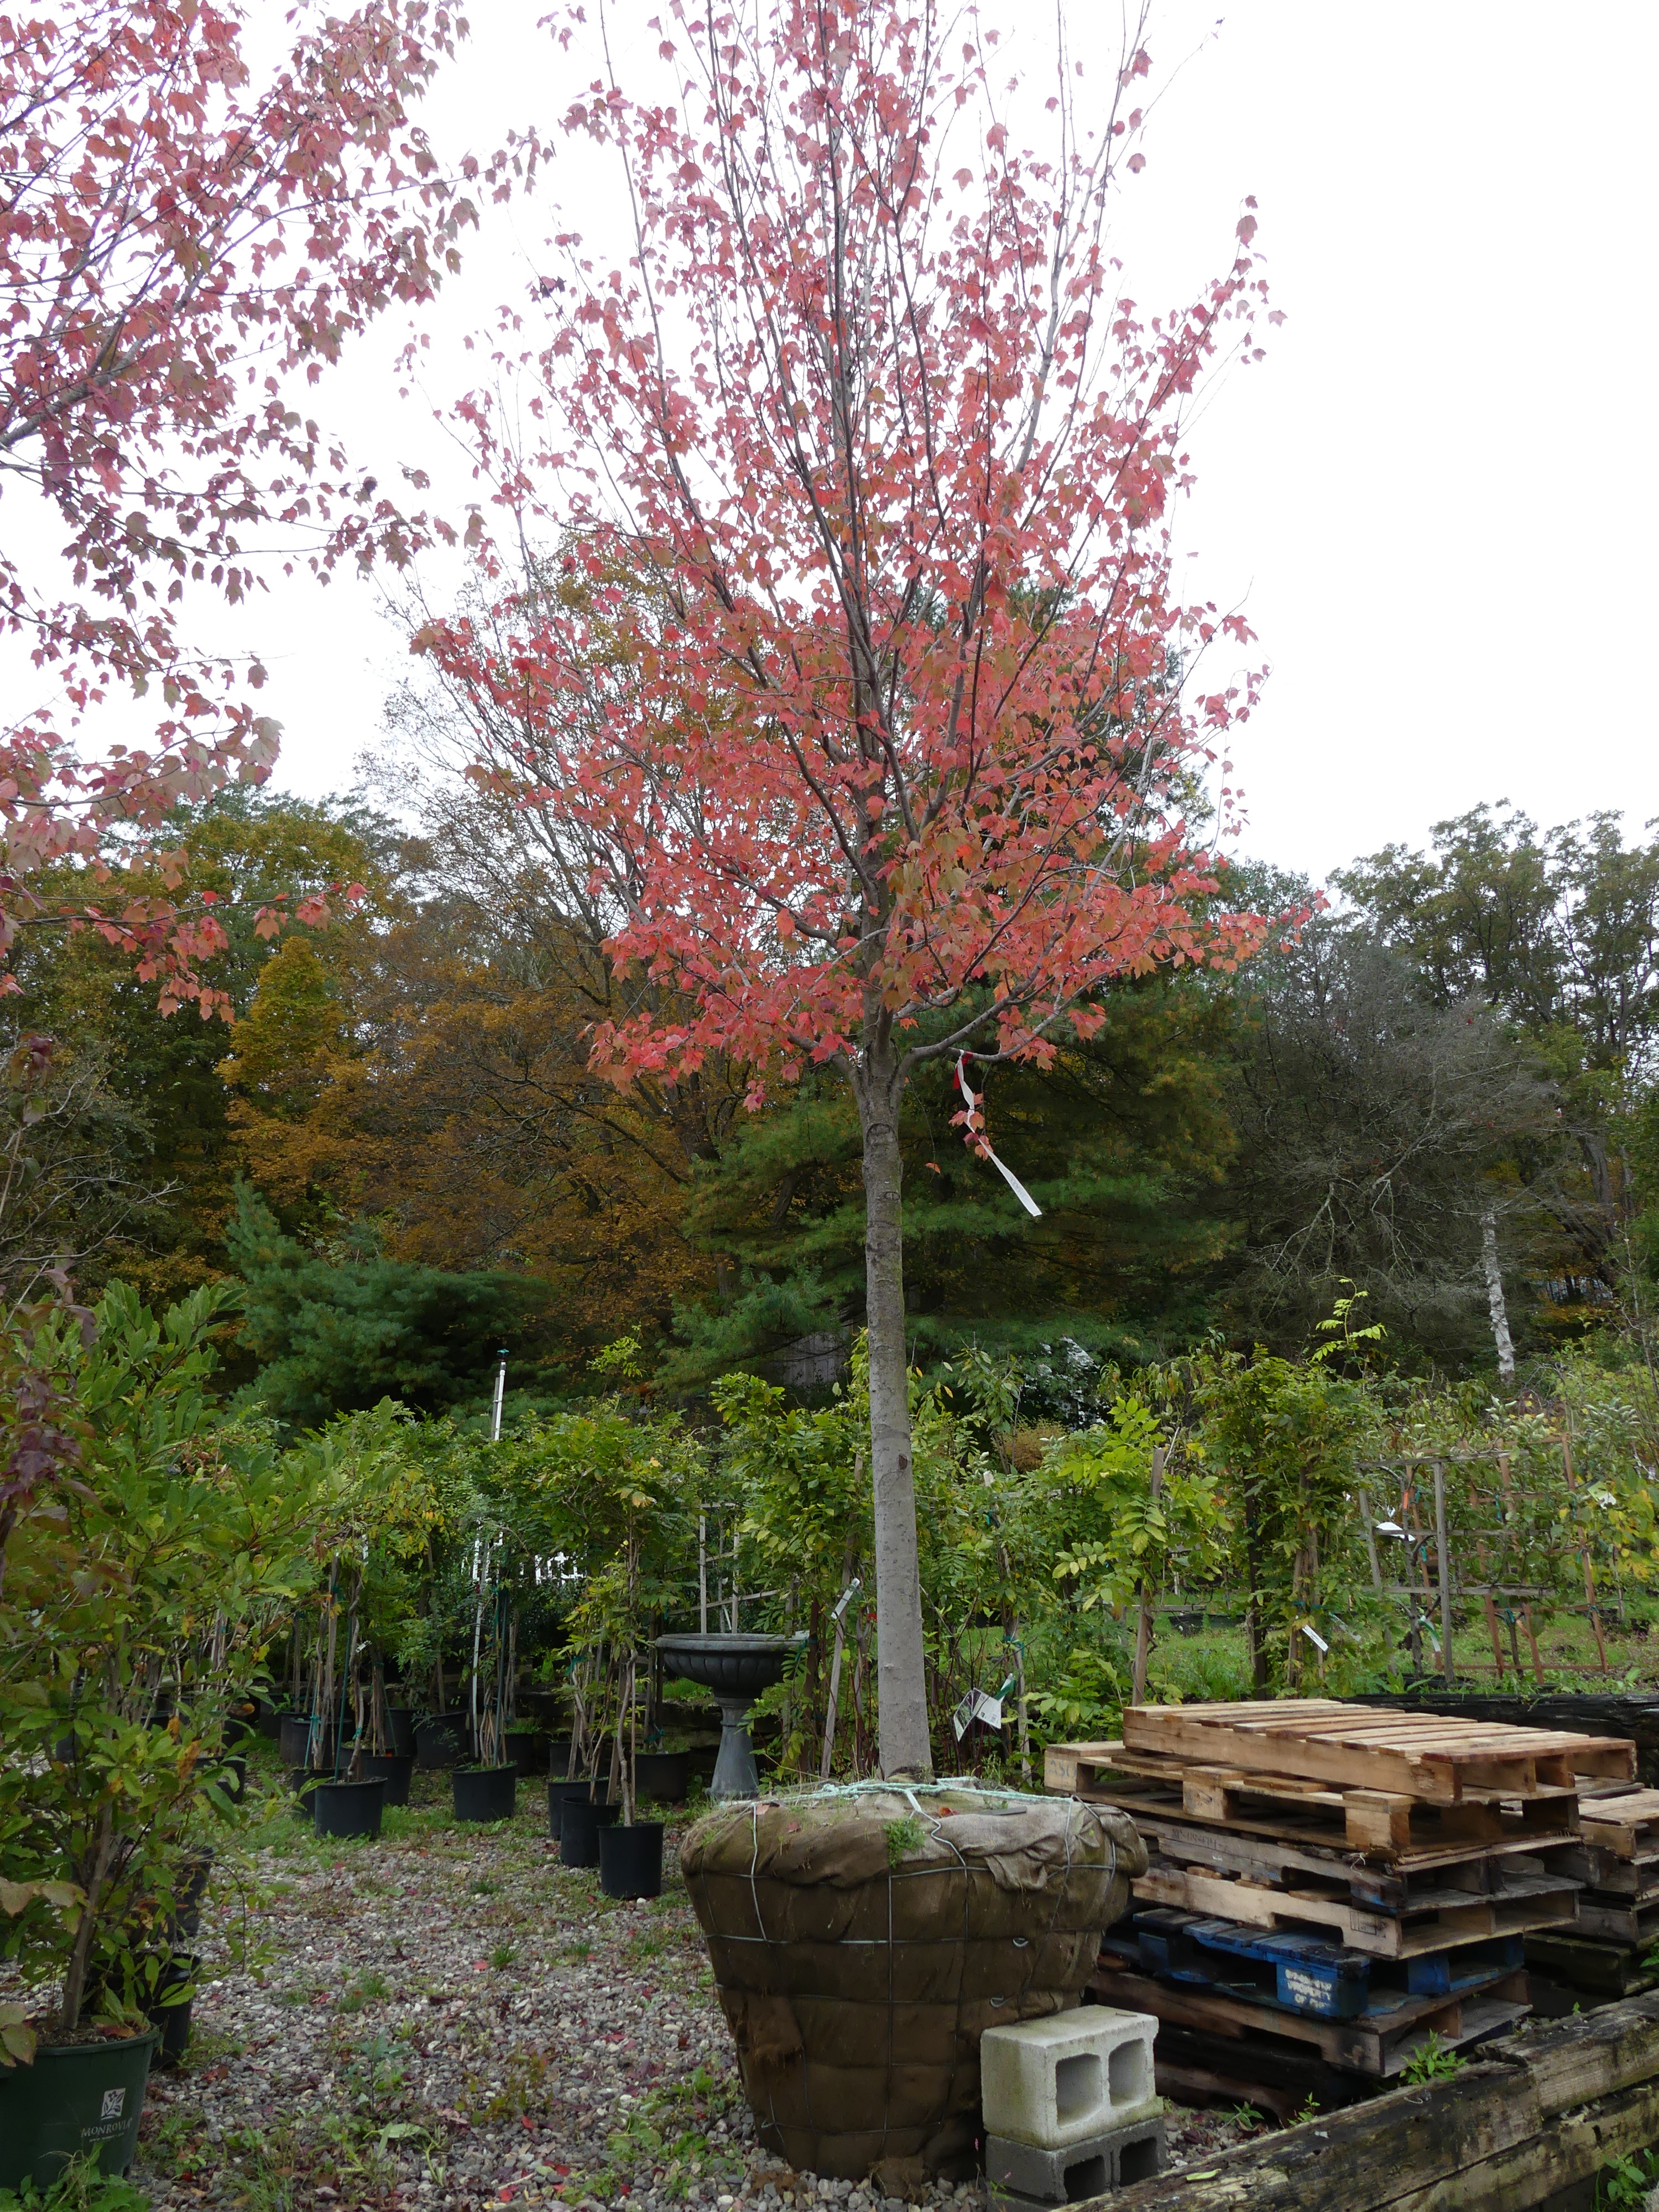 A sugar maple in a nursery waiting for a home. The nursery doesn't want to overwinter the tree, and the 15-foot tall specimen could be somebody's bargain. It will take this tree about two years to settle in, then it will grow 1 to 2 feet taller each year. ANDREW MESSINGER